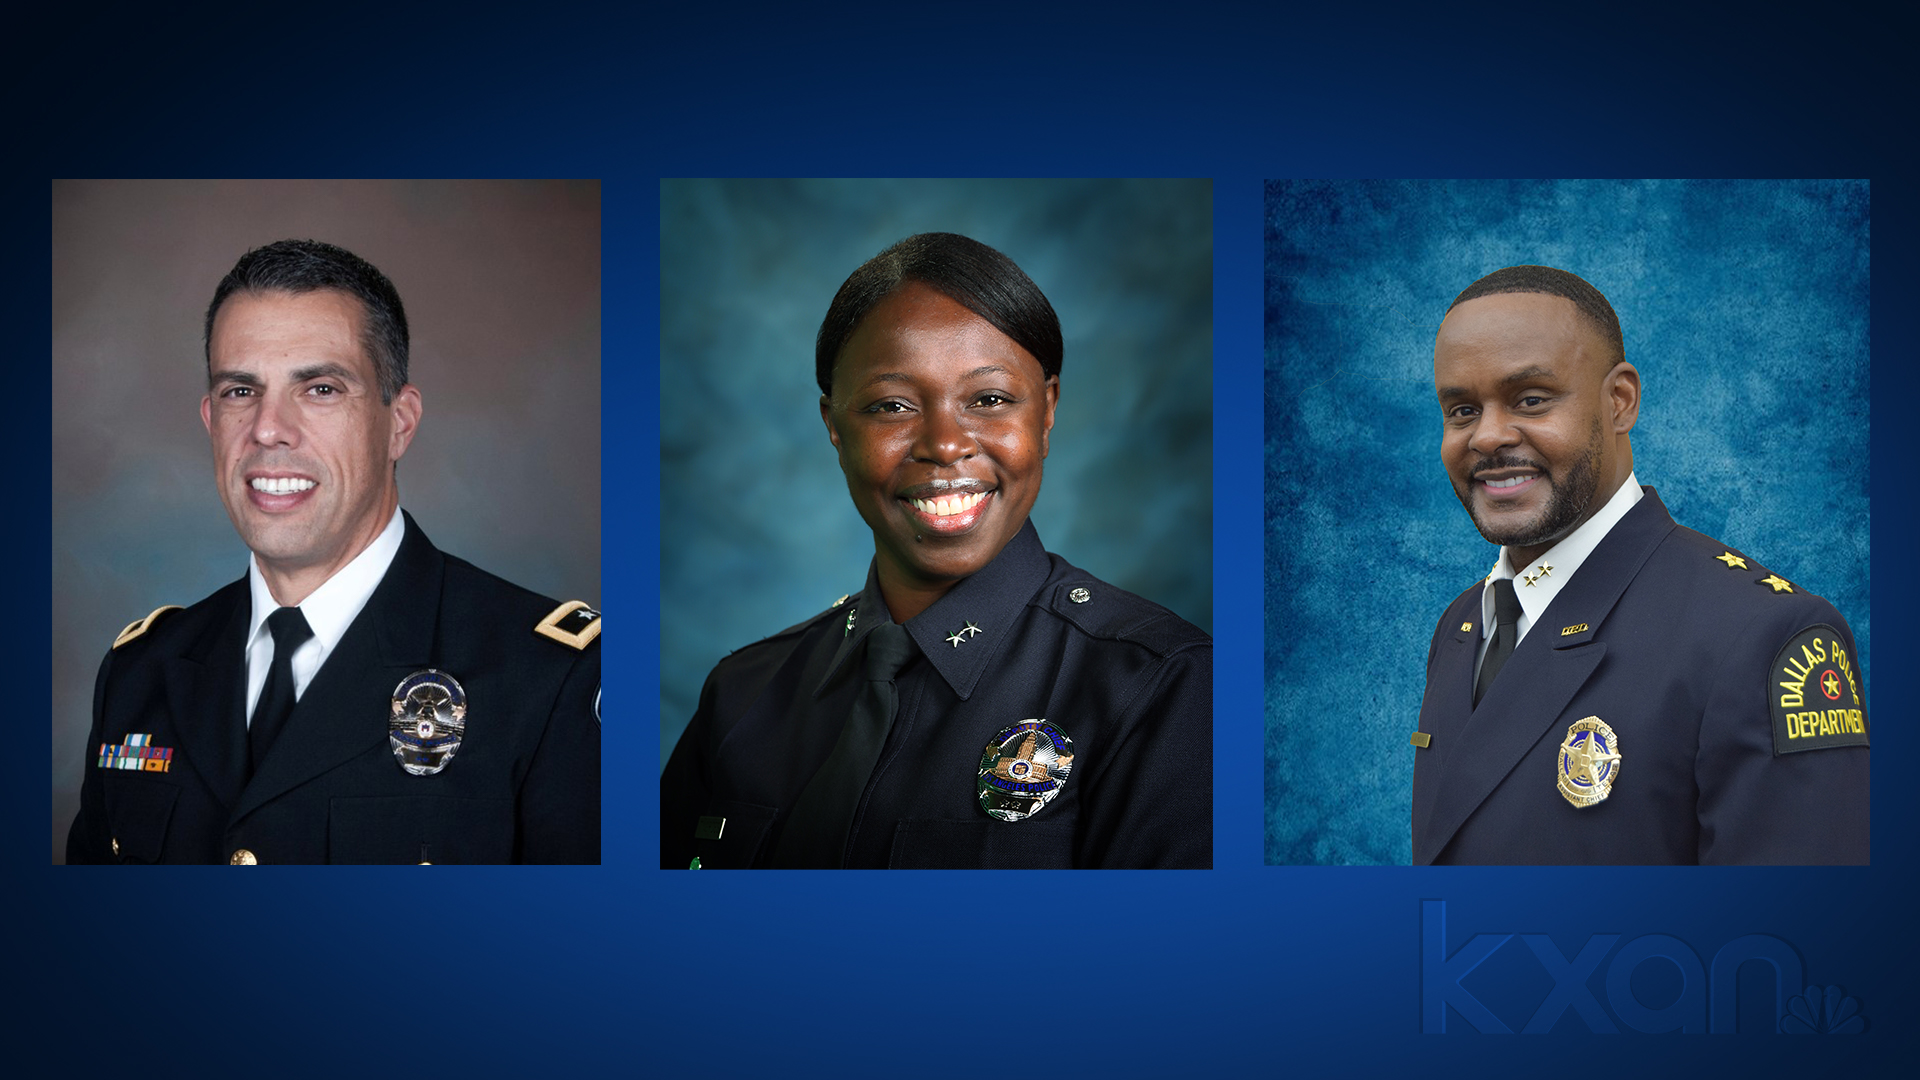 The three finalists for the permanent Austin Police Chief job are interim APD chief Joseph Chacon (left), deputy Los Angeles PD chief Emada E. Tingirides (middle) and assistant Dallas PD chief Avery Moore. (City of Austin photos)